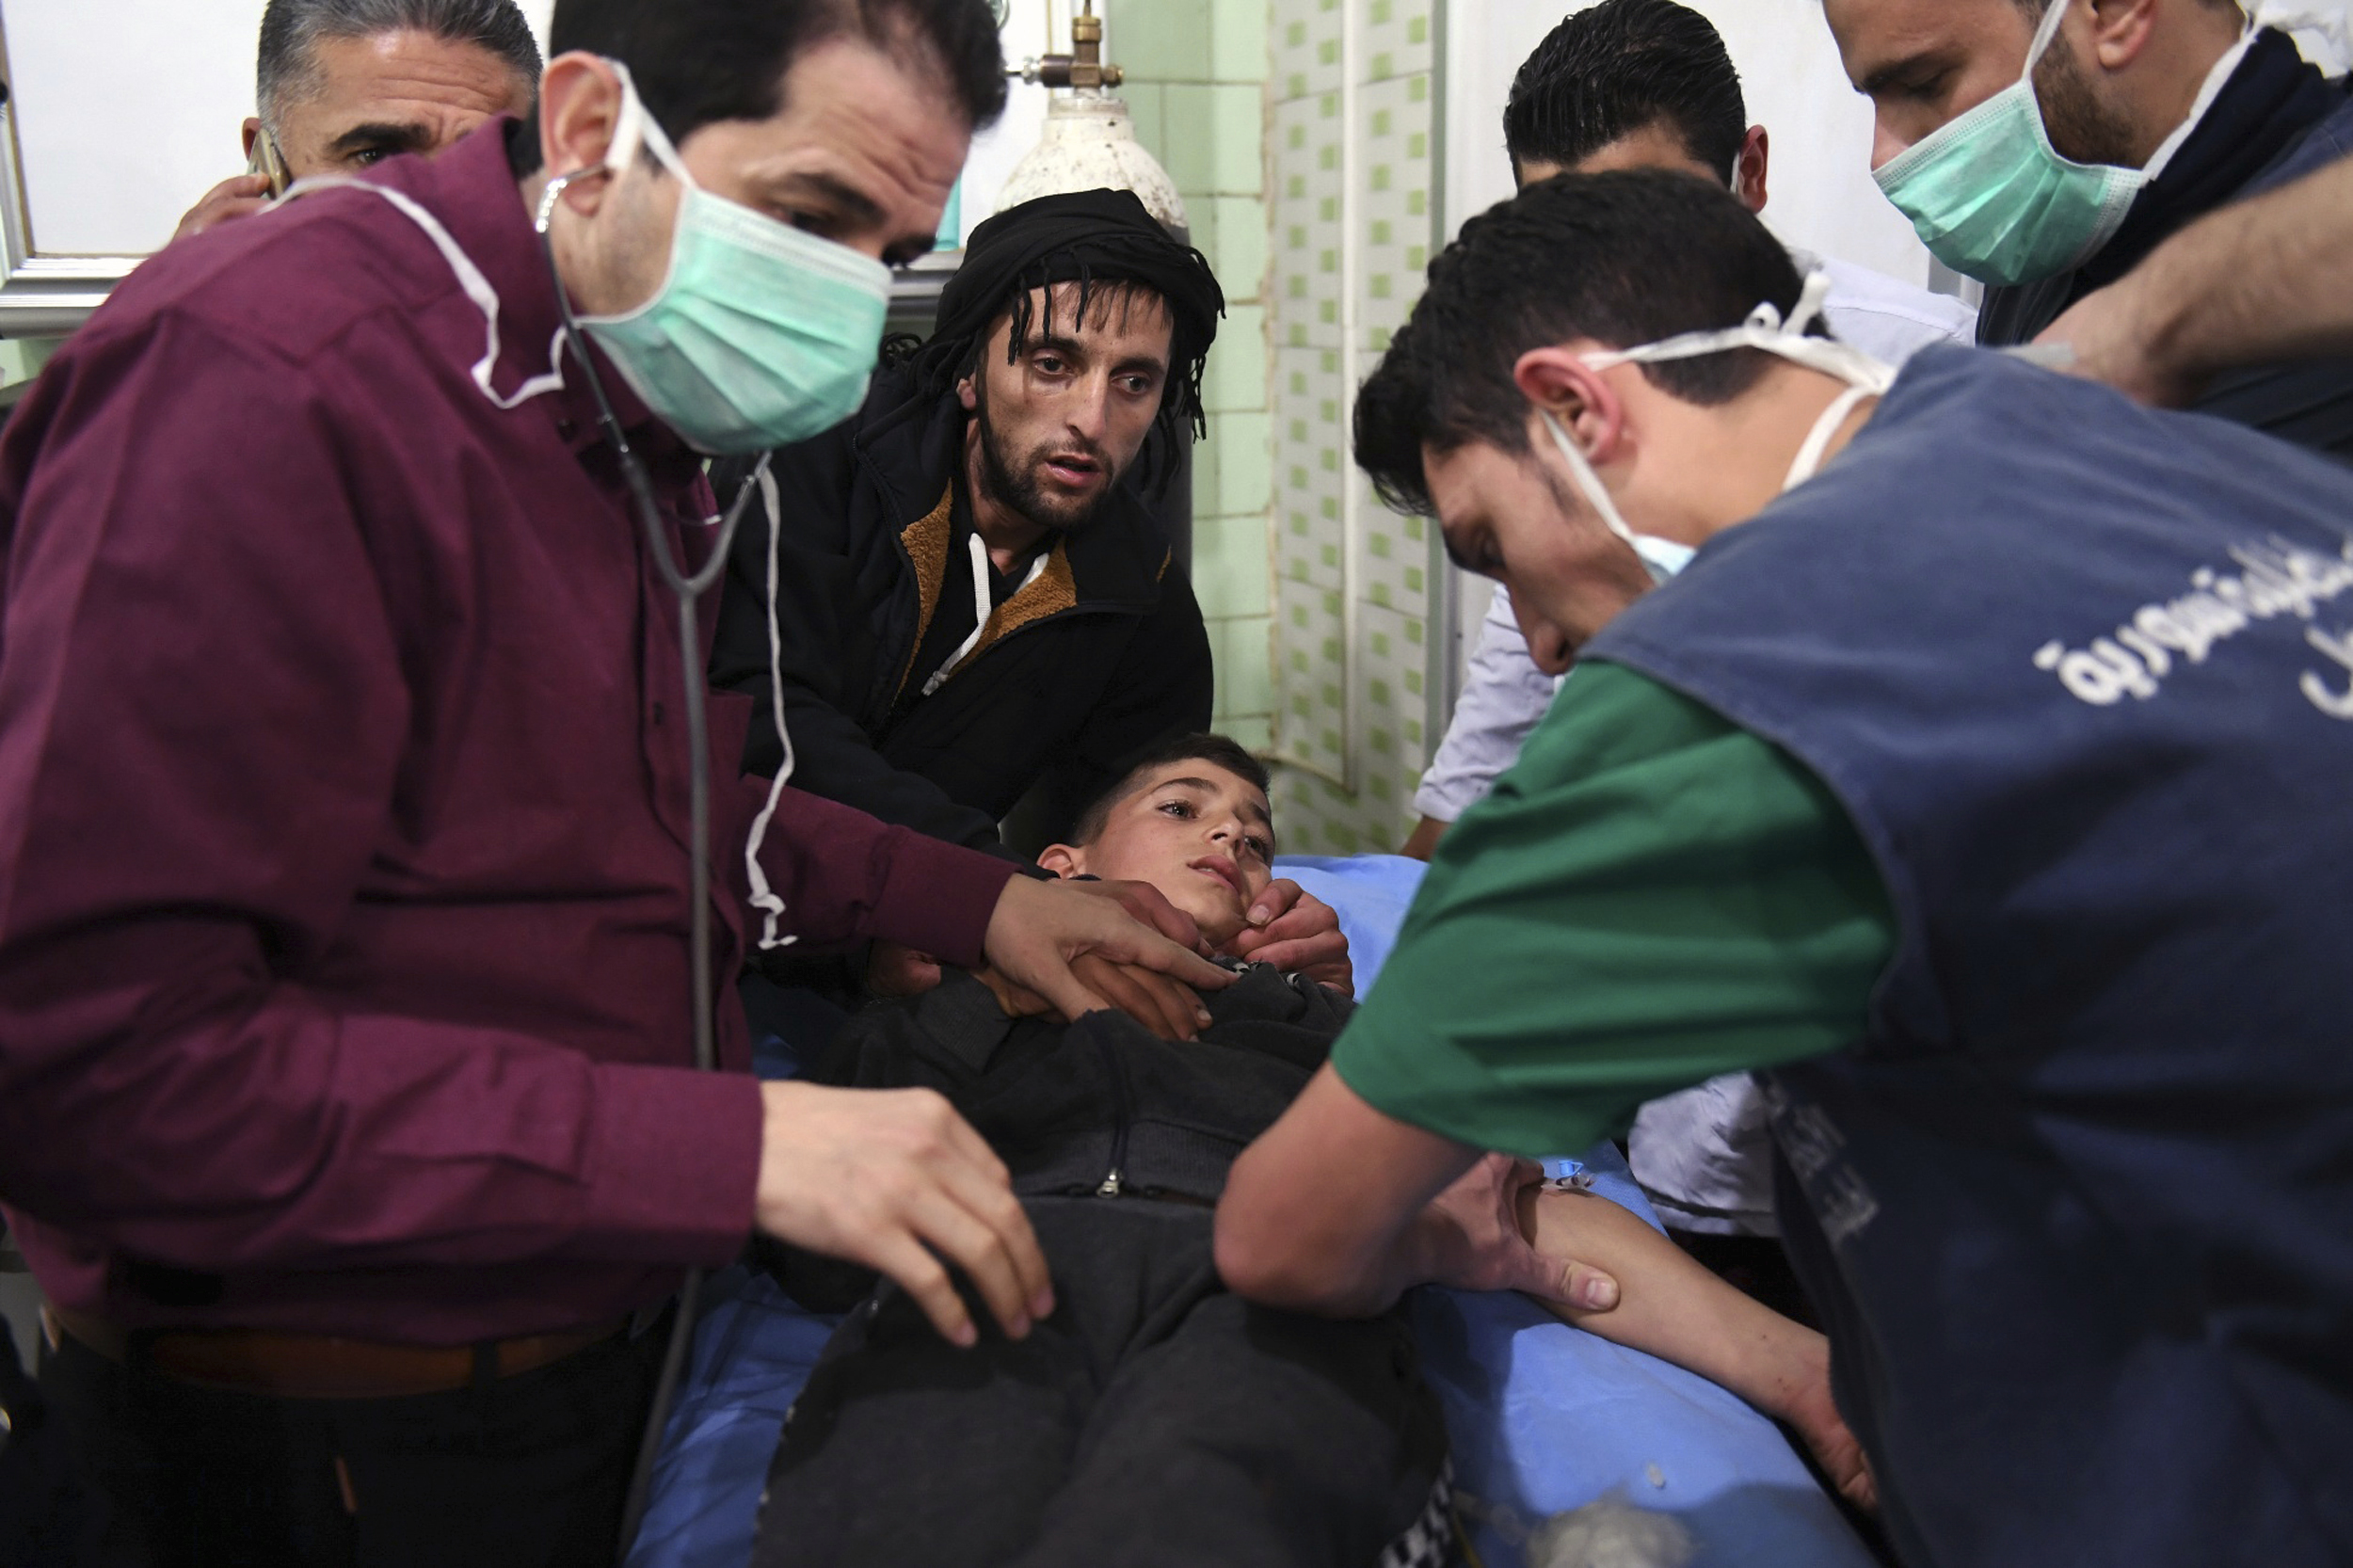 This photo released by the Syrian official news agency SANA shows medical staff treating a boy following a suspected chemical attack on his town of al-Khalidiya, in Aleppo, Syria, Nov. 24, 2018.